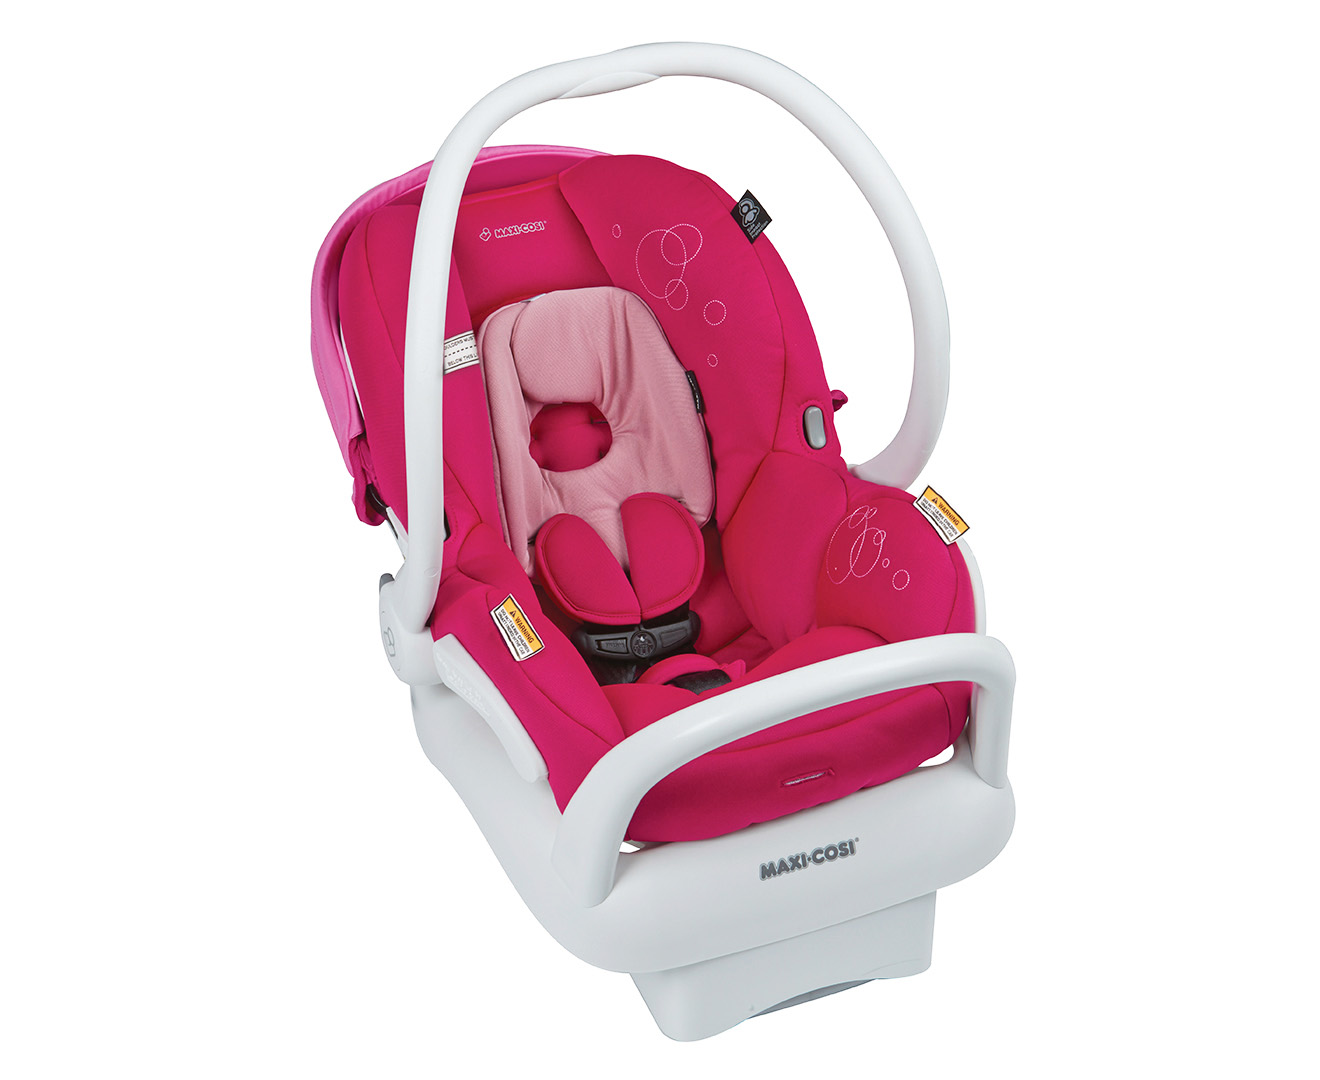 maxi cosi mico ap infant car seat capsule passionate pink ebay. Black Bedroom Furniture Sets. Home Design Ideas